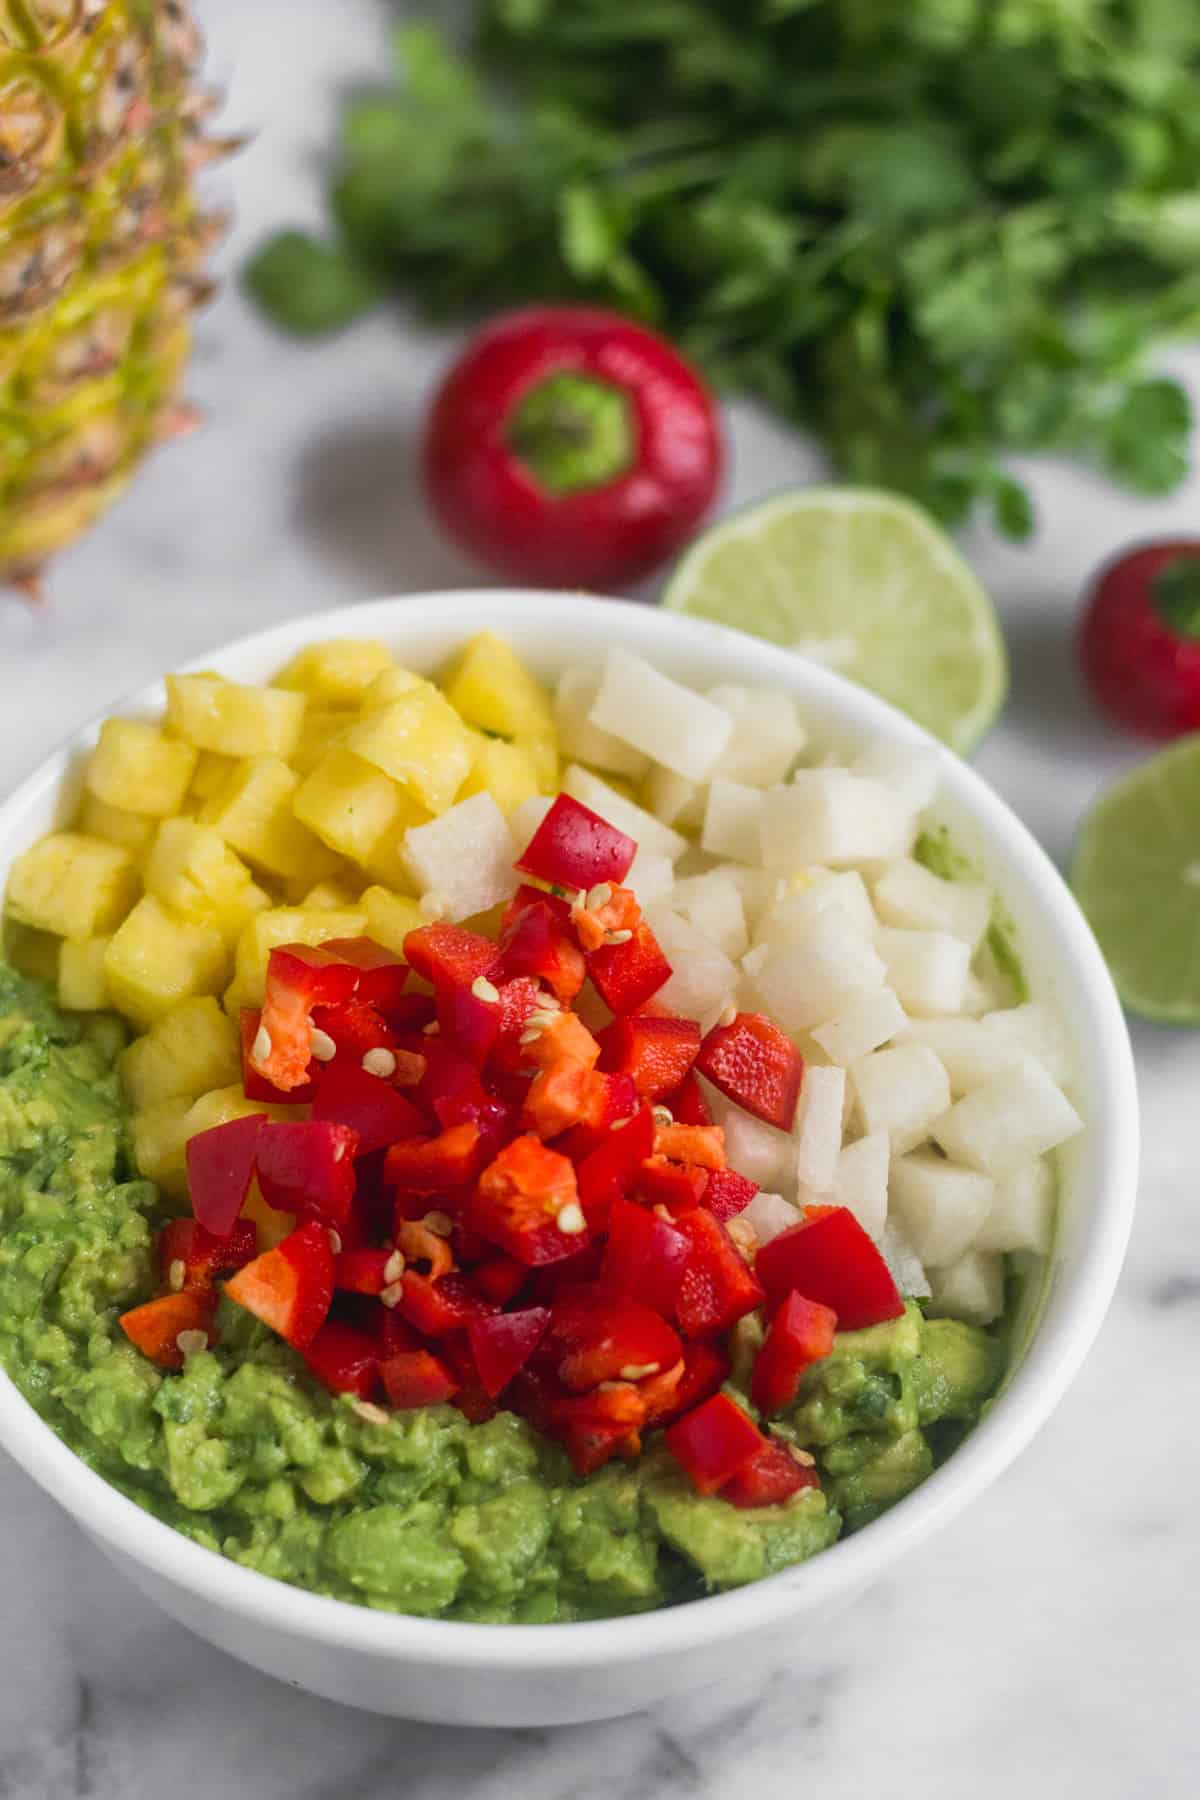 White bowl filled with mashed avocado, diced pineapple, diced jicama, and diced cherry peppers, with limes, cherry peppers, cilantro, and a pineapple behind it